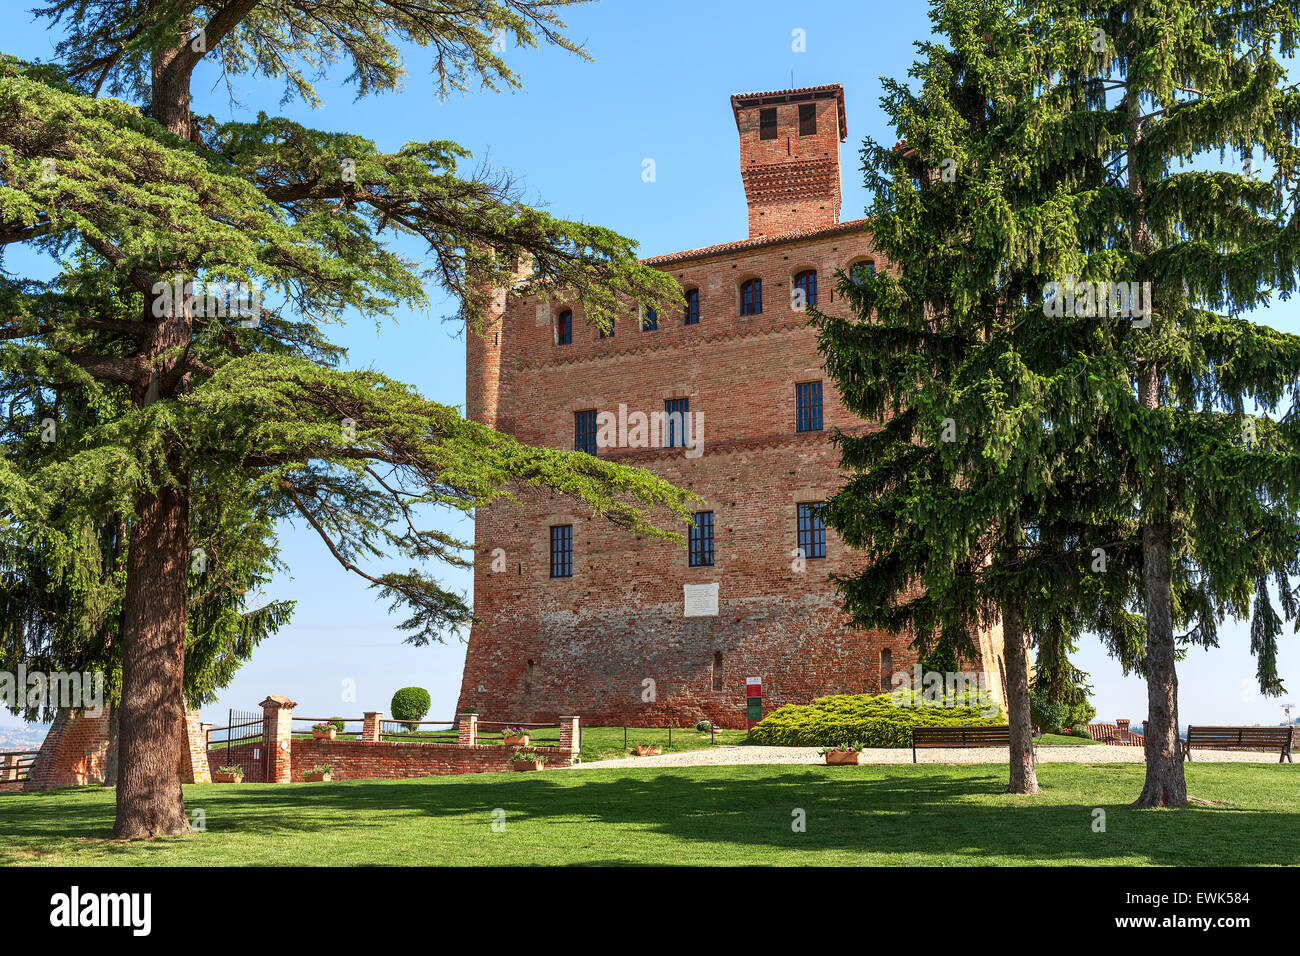 Small green lawn, trees and medieval castle in Piedmont, Northern Italy. - Stock Image